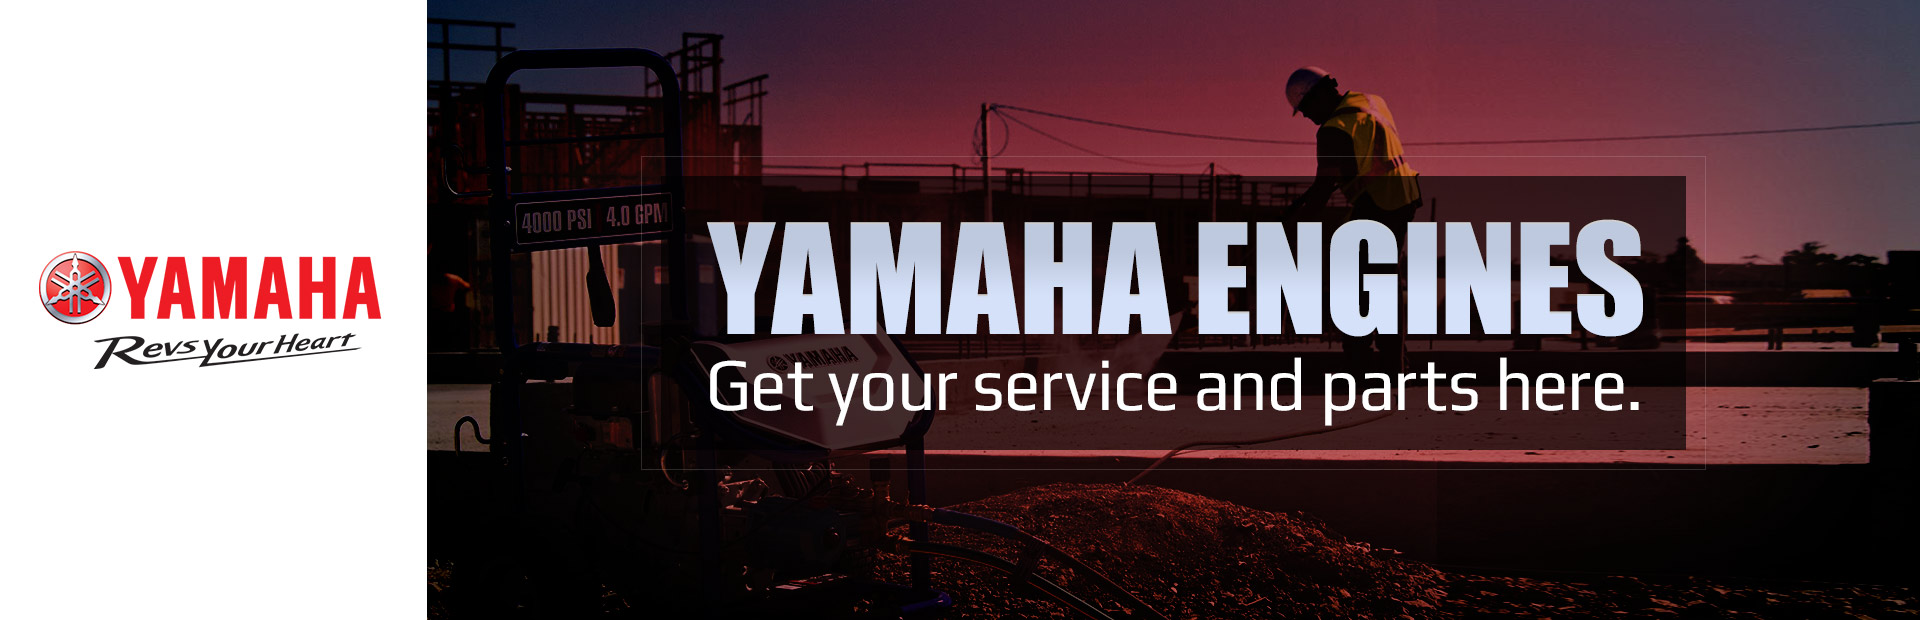 Yamaha Engines: Get your service and parts here.